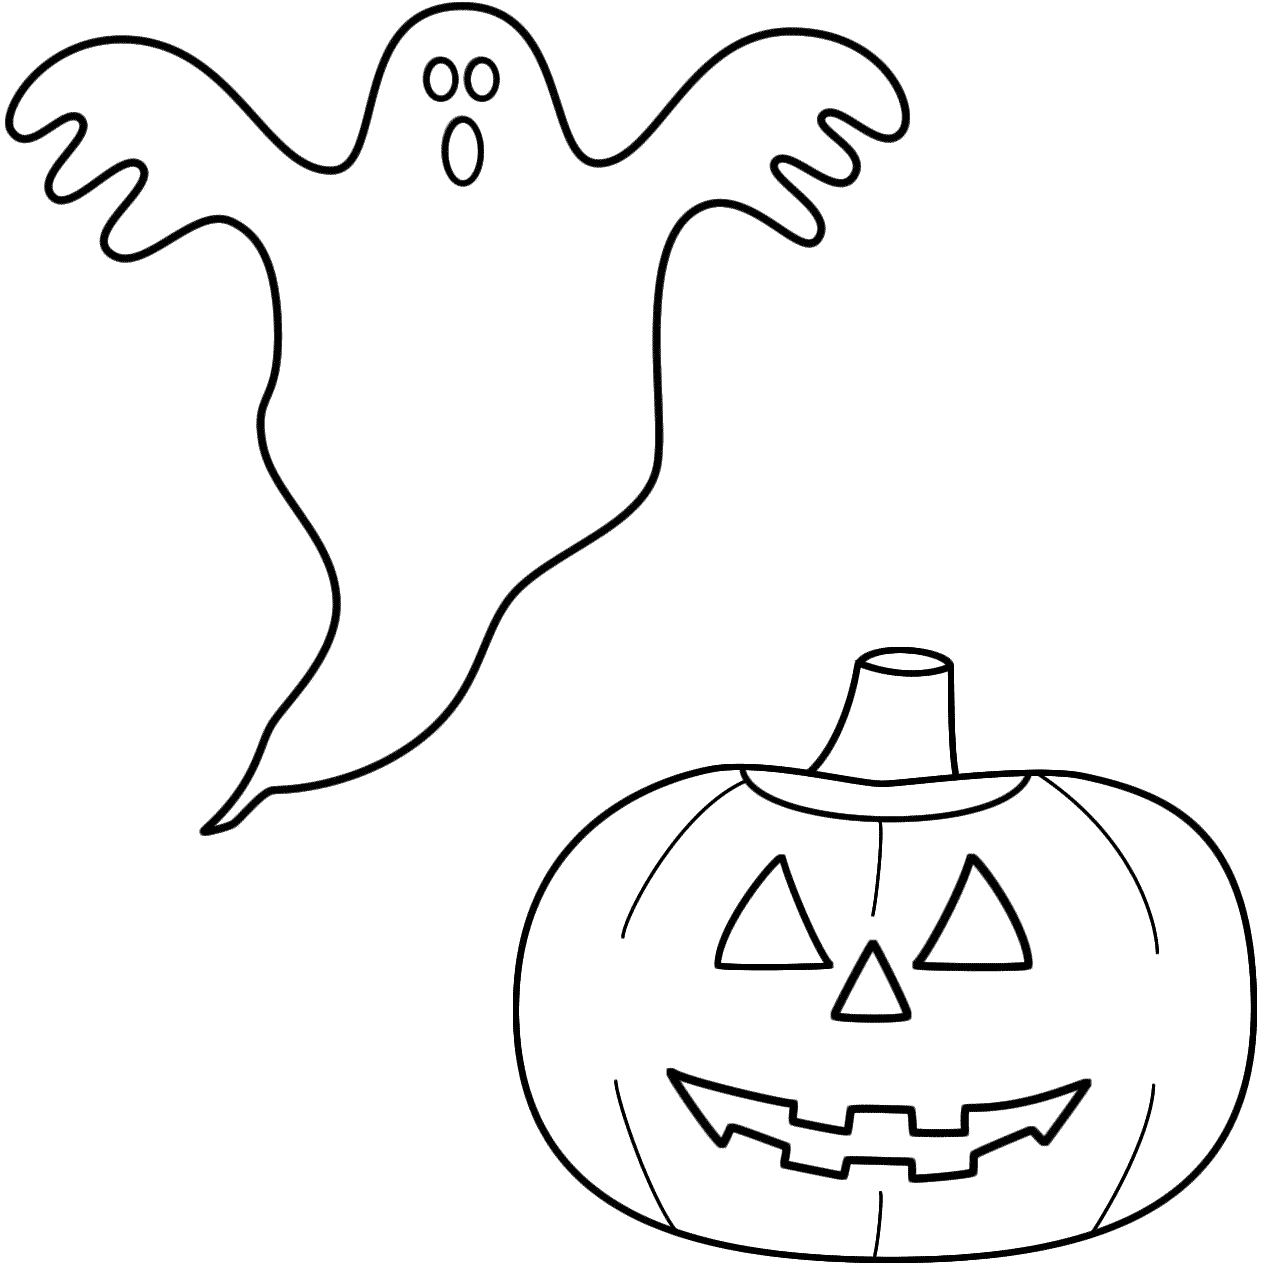 coloring halloween ghost 30 free ghost coloring pages printable halloween coloring ghost